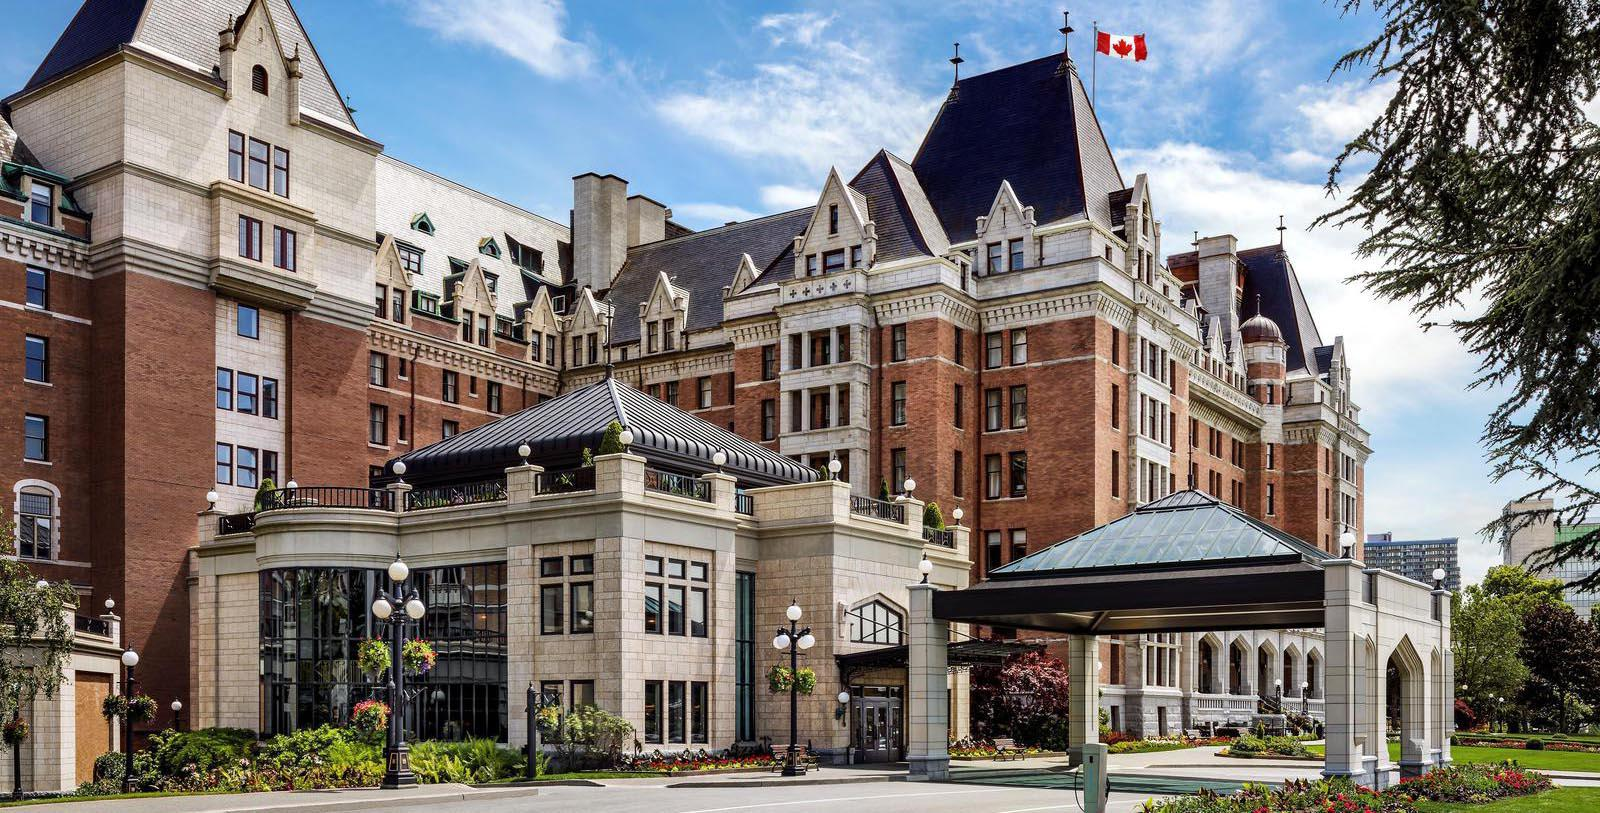 Image of hotel exterior Fairmont Empress, 1908, Member of Historic Hotels Worldwide, in Victoria, British Columbia, Canada, Special Offers, Discounted Rates, Families, Romantic Escape, Honeymoons, Anniversaries, Reunions